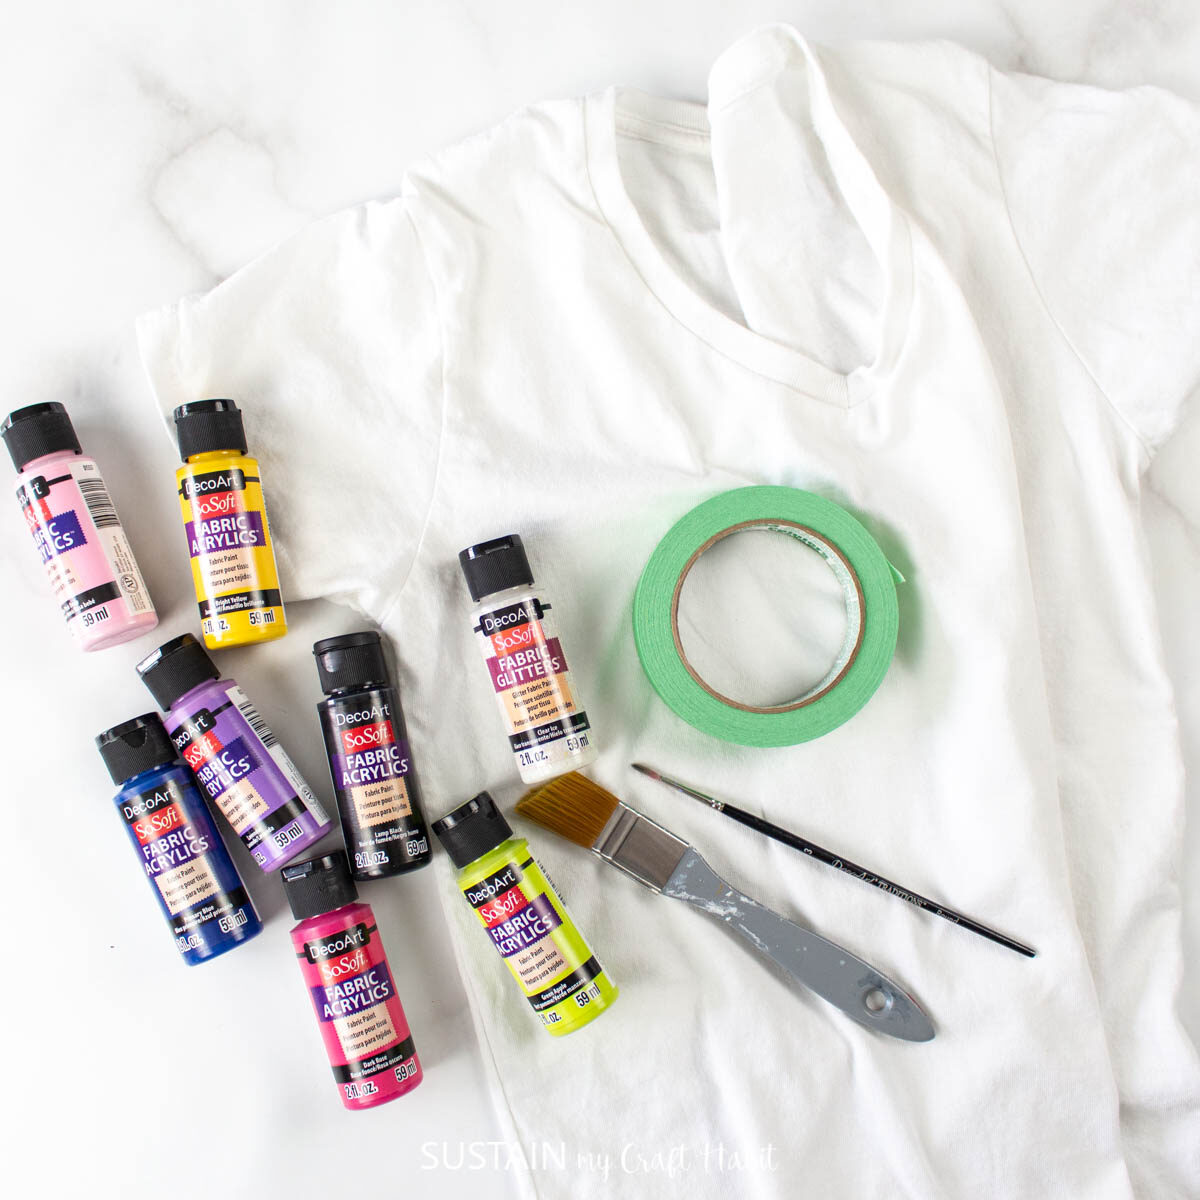 Materials needed for a tshirt painting including a shirt, paint, paint brush and masking tape.